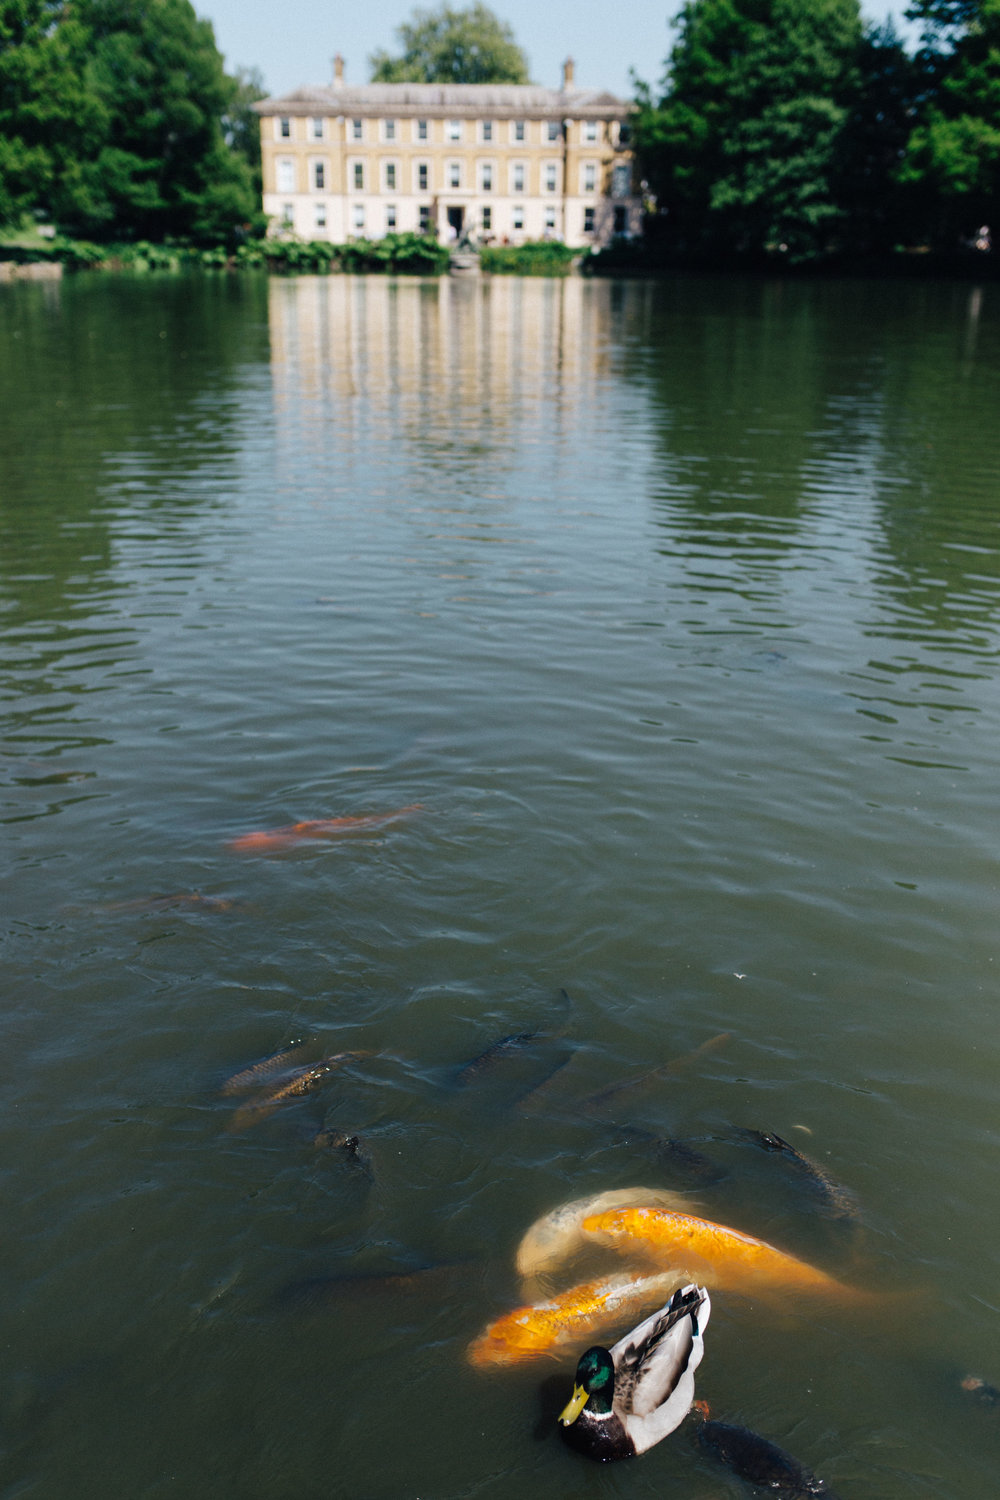 There's something quite hypnotic about watching koi carps eating food and battling against ducks… -